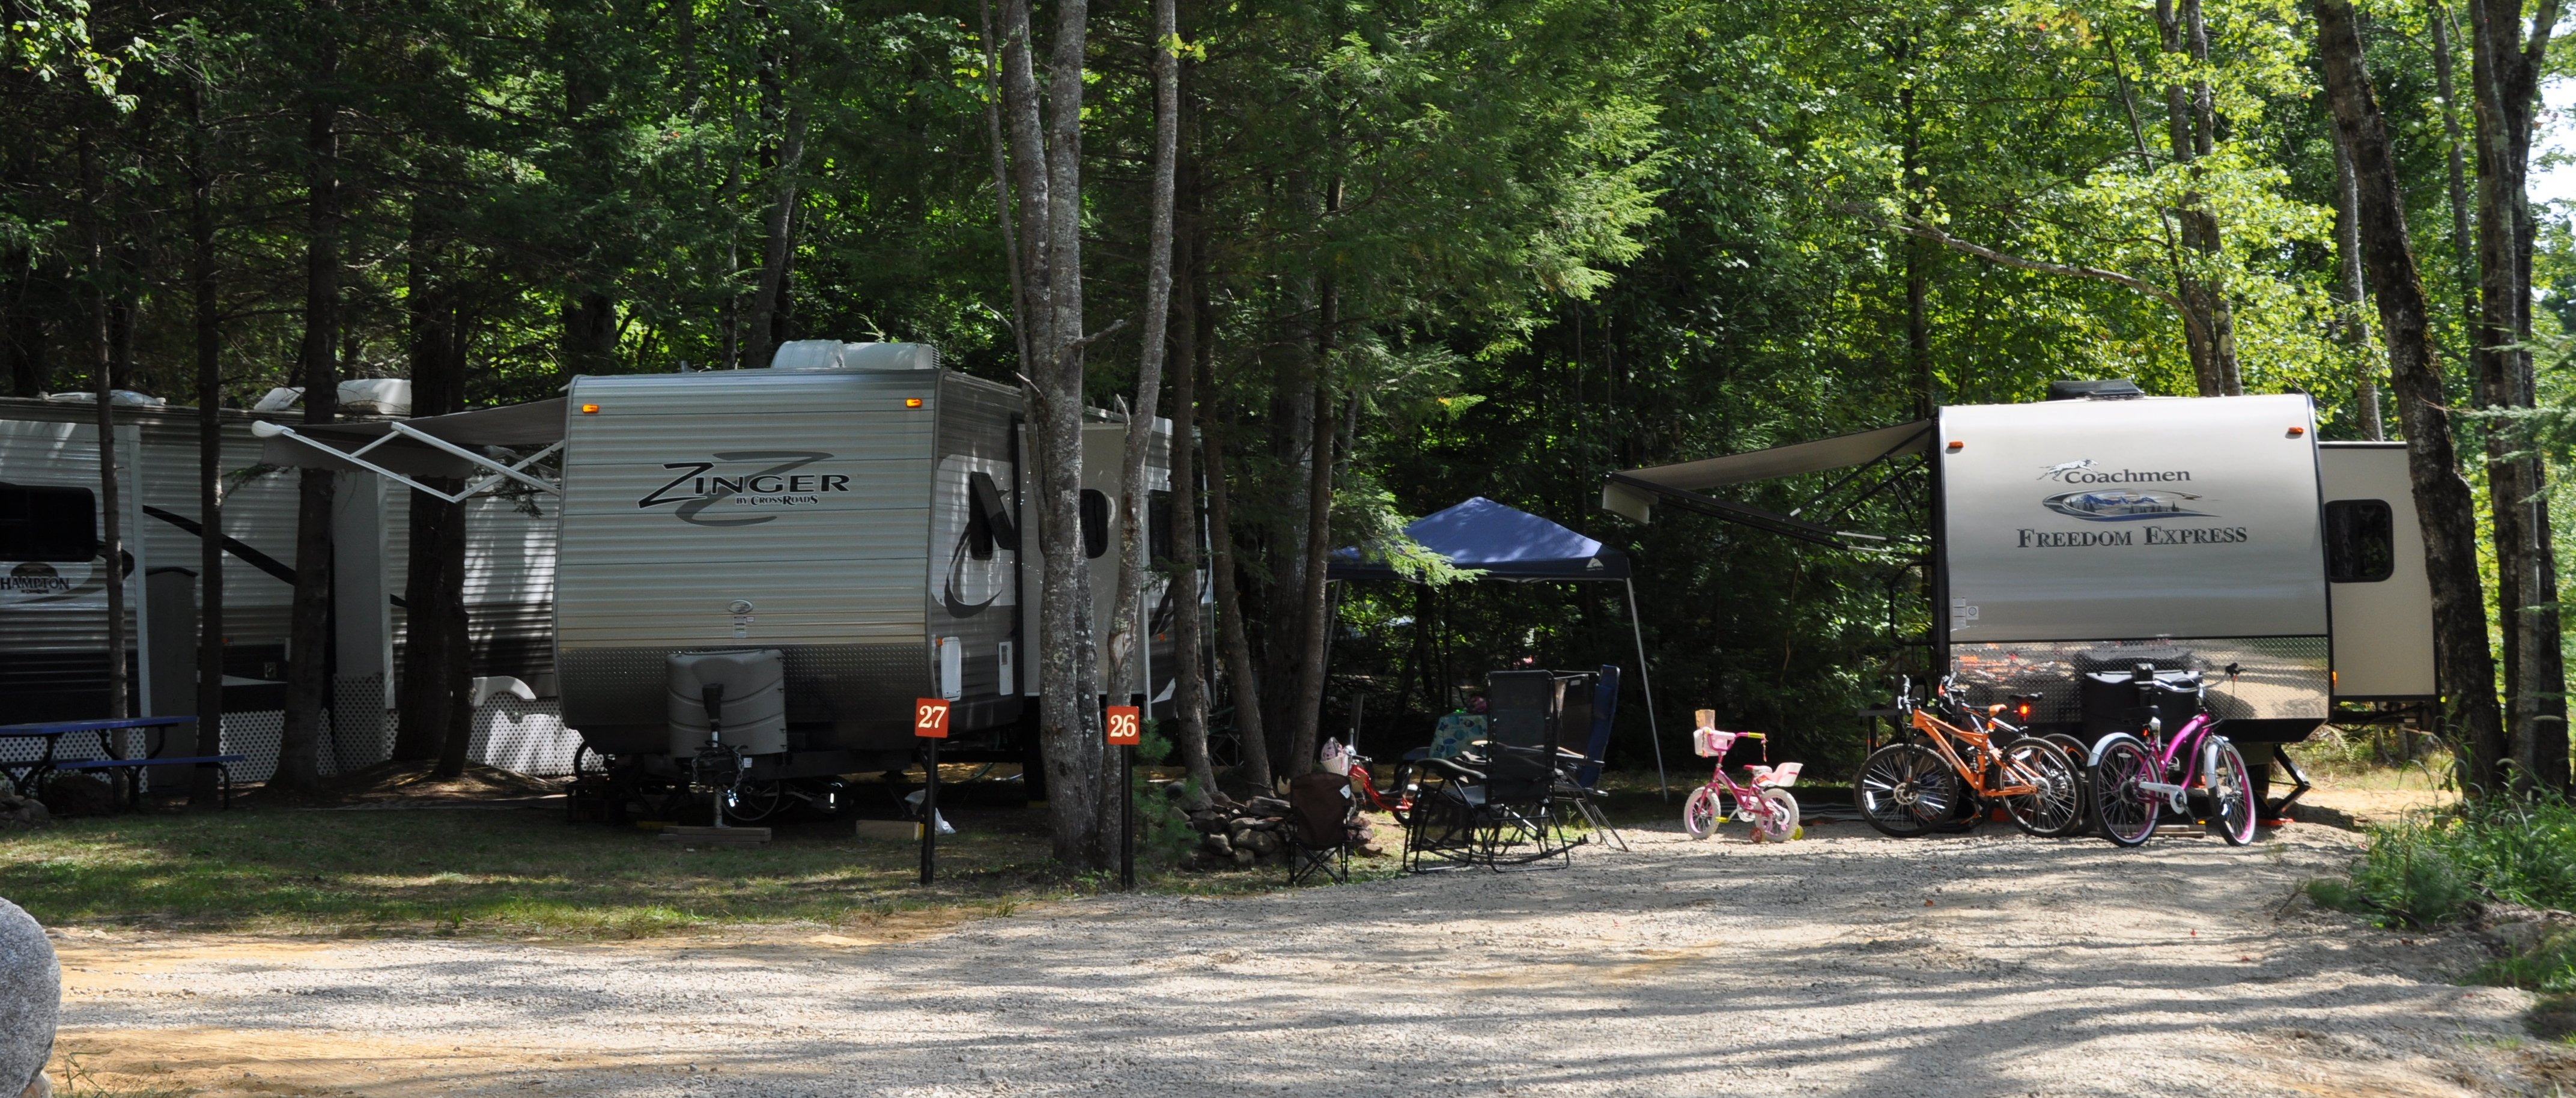 Spacious campsites accommodating basic tenting to RV's up to 42'. include picnic tables, fire pits and electricity.